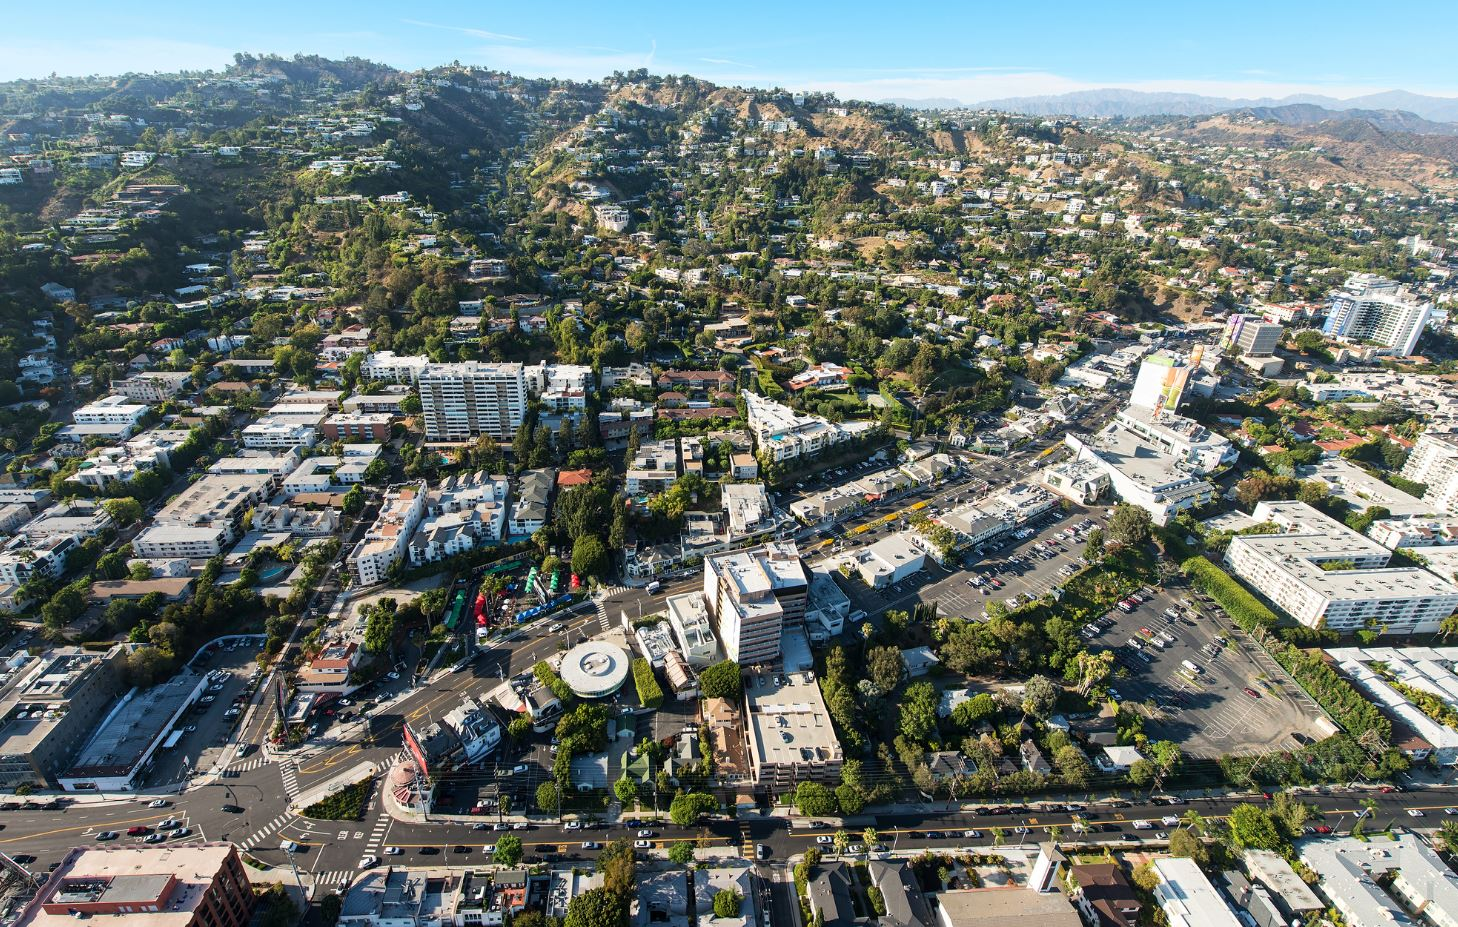 hollywood west ucla neighborhoods things covid california los angeles views doubles province gosschips weho conference gold